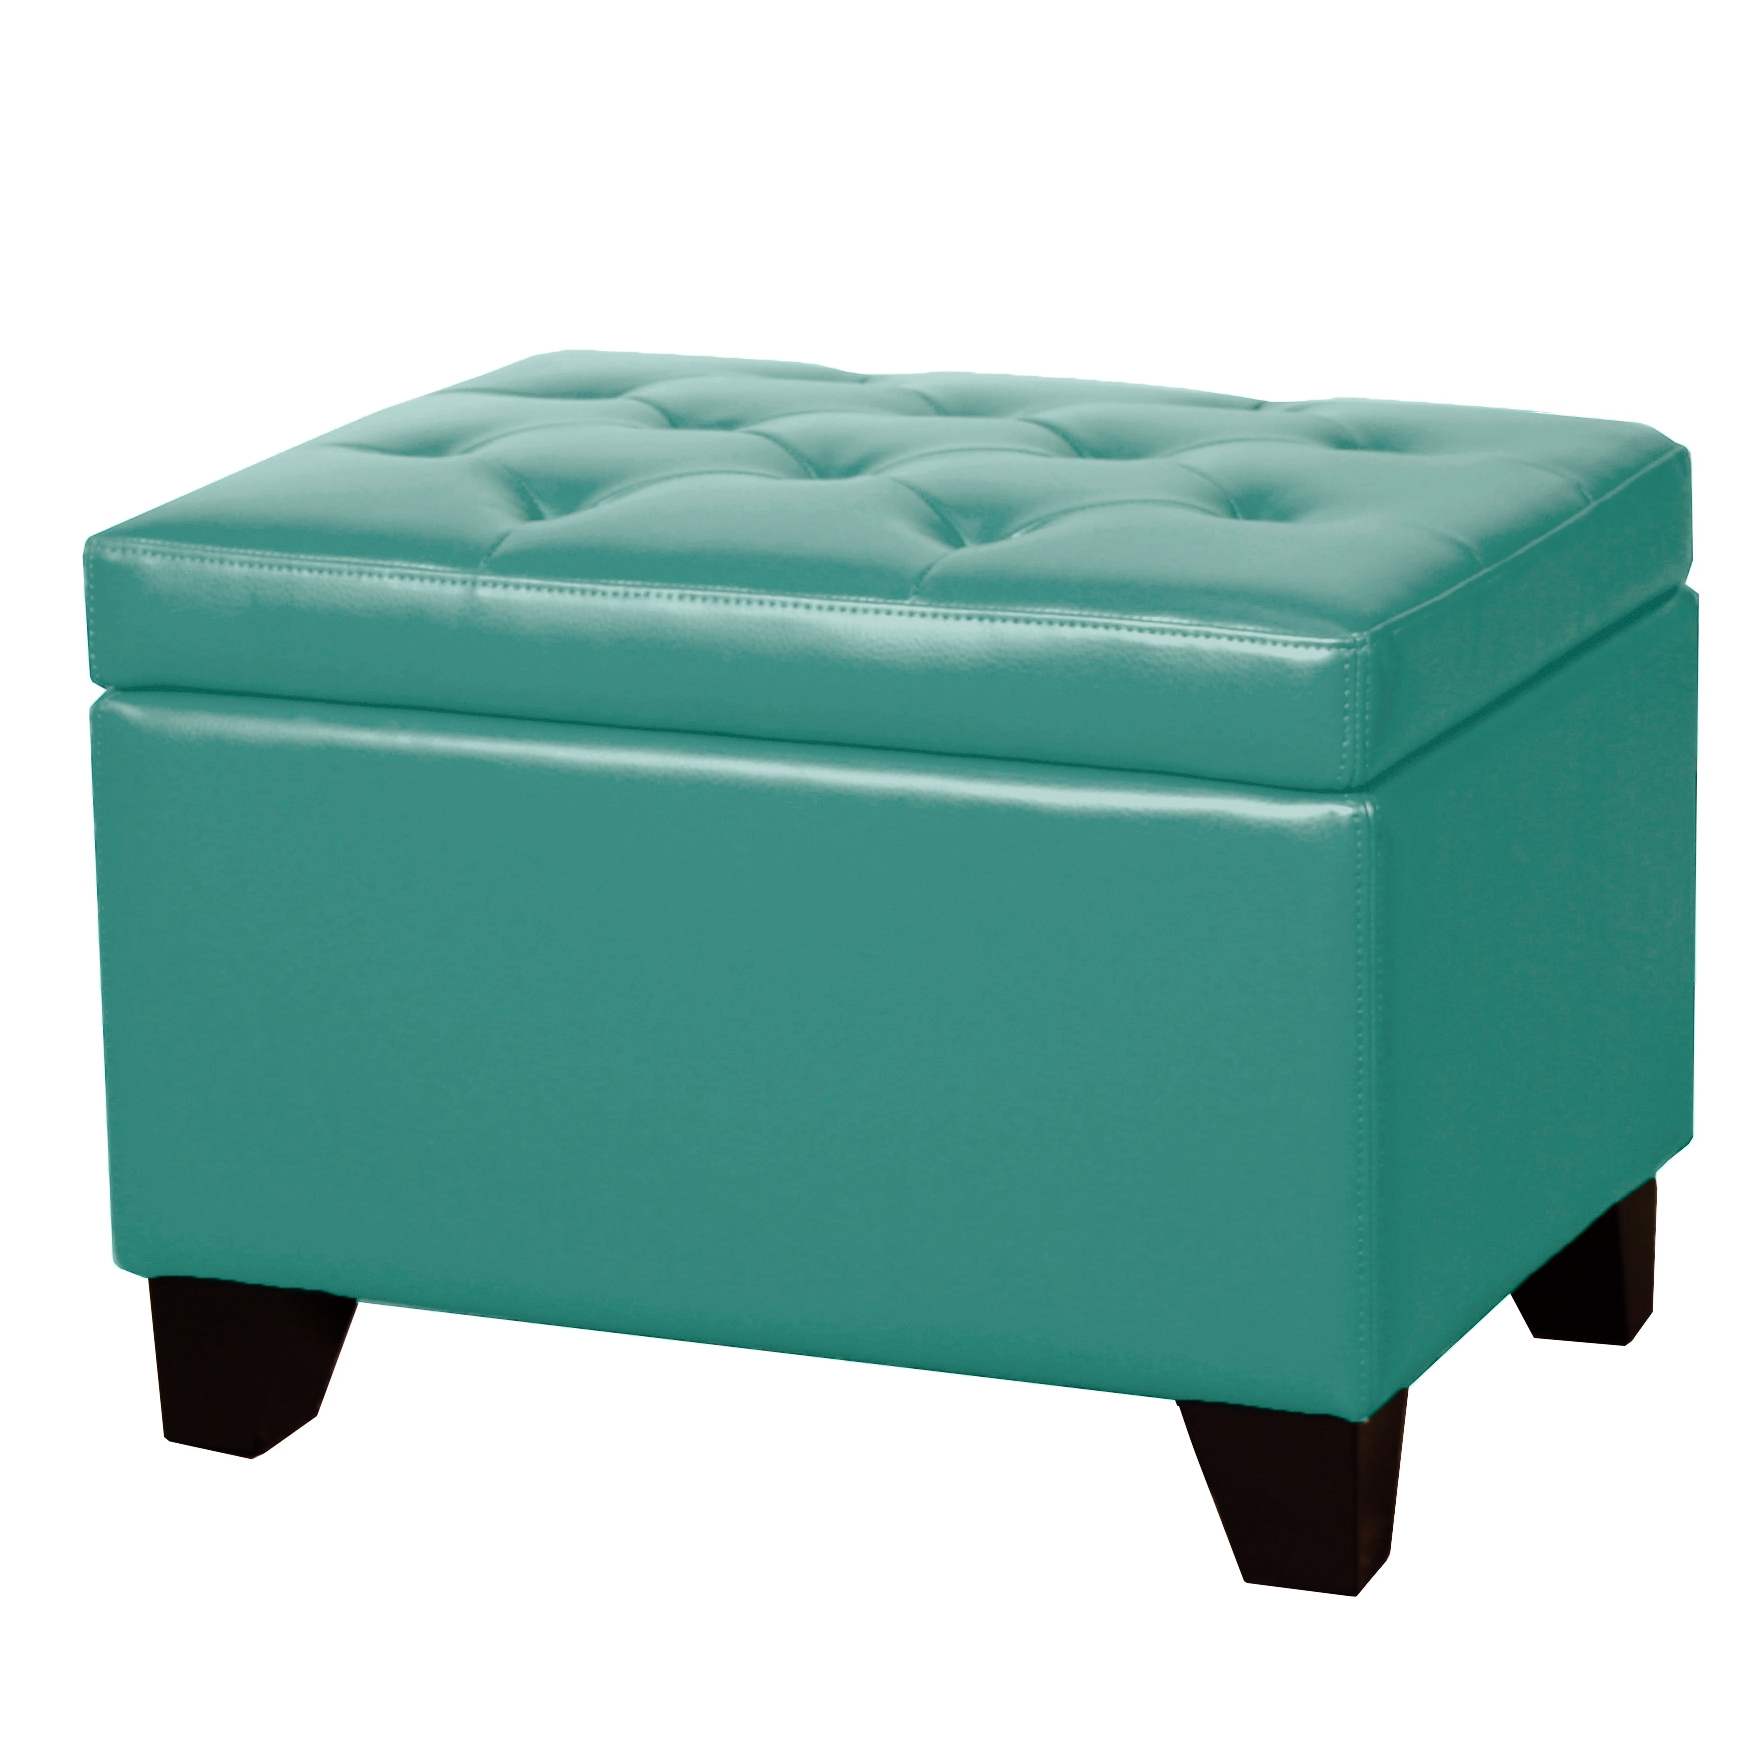 Julian Rectangular Bonded Leather Storage Ottoman Turquoise/194424B-323  sc 1 st  New Pacific Direct & 194424B-323 - NPD Furniture | Stylish u0026 Affordable Lifestyle ...